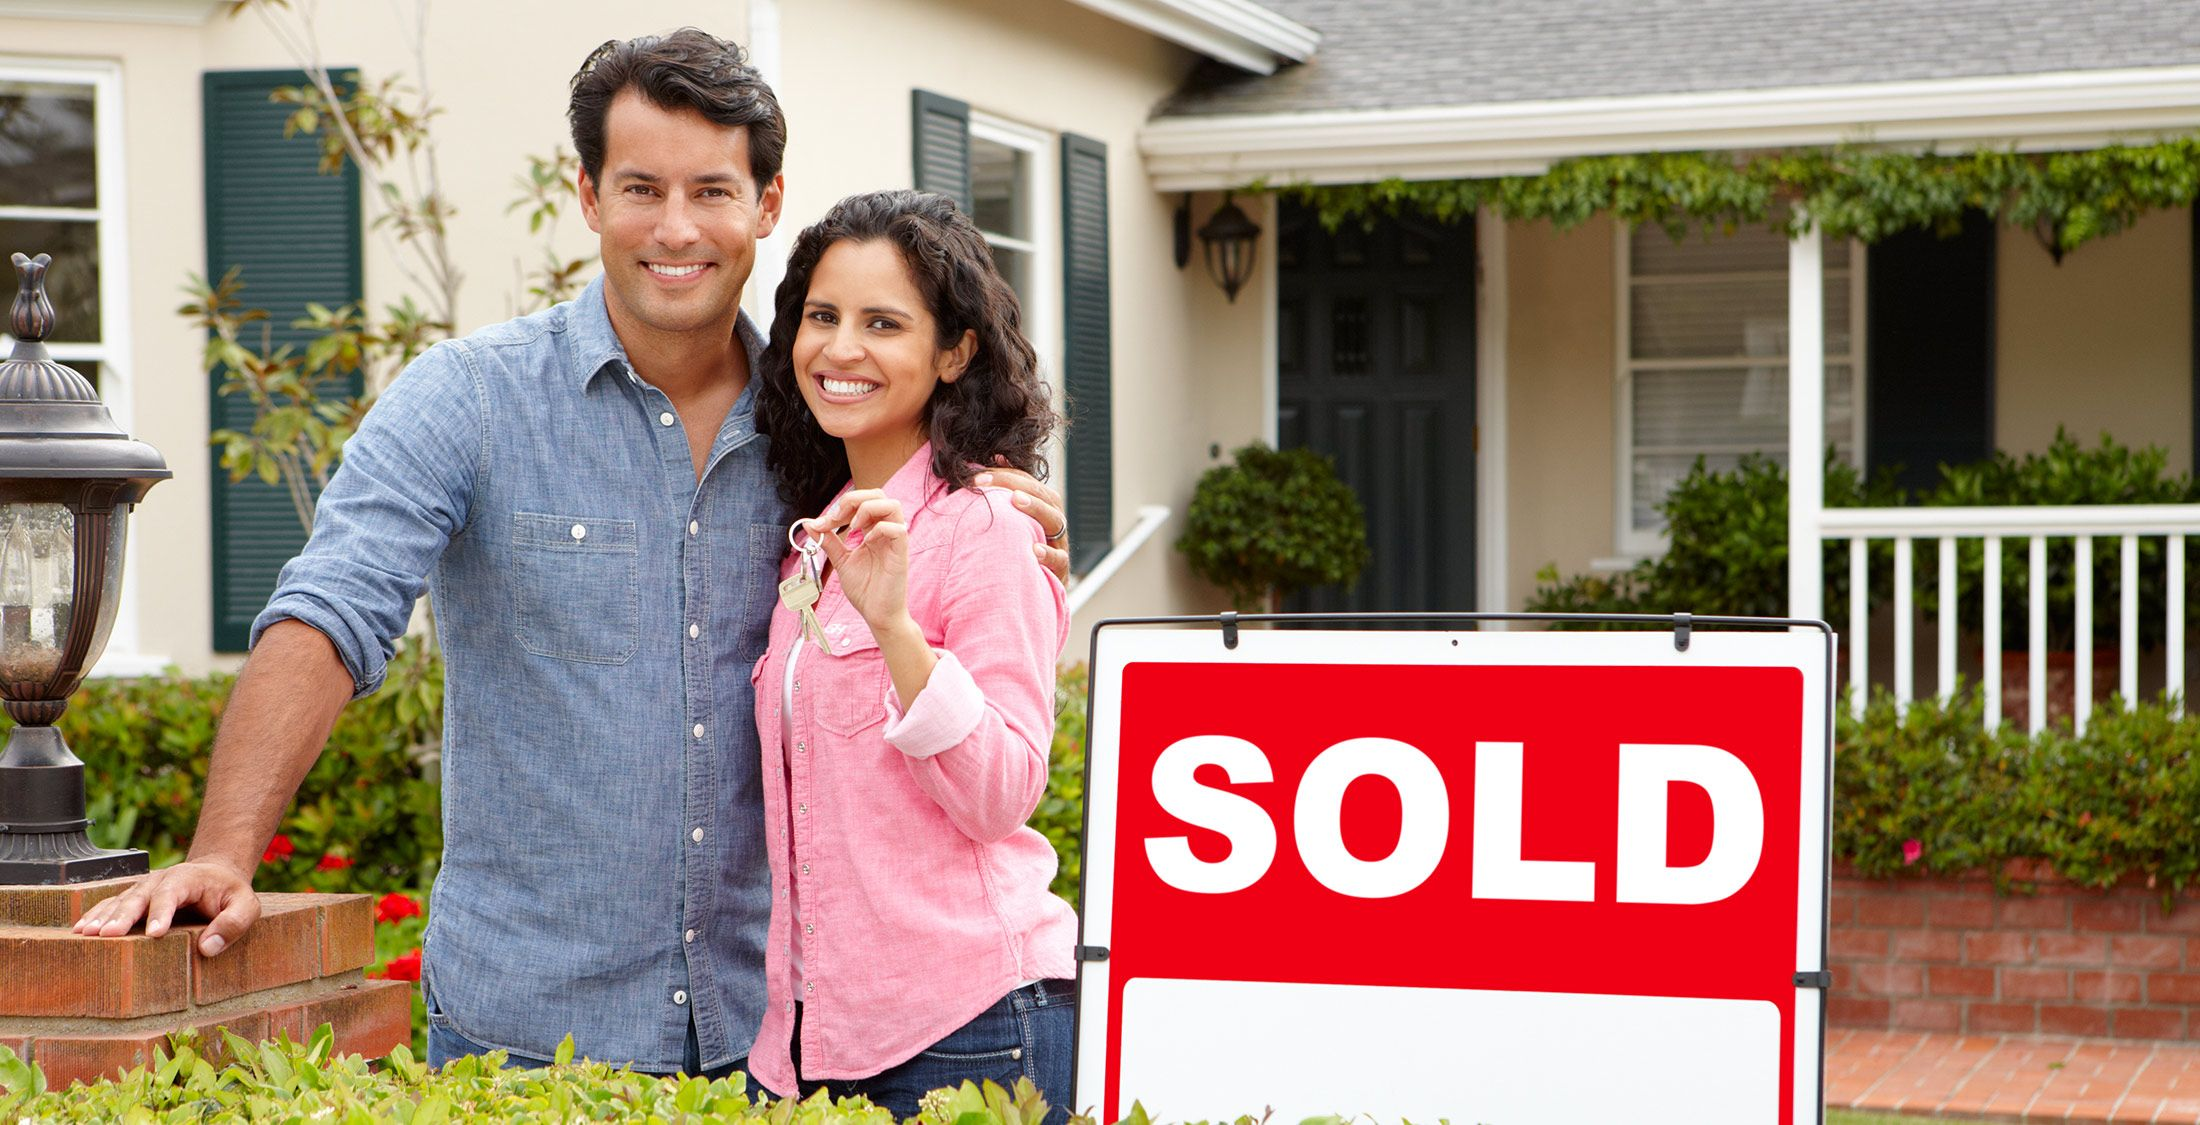 couple standing in front of sold house